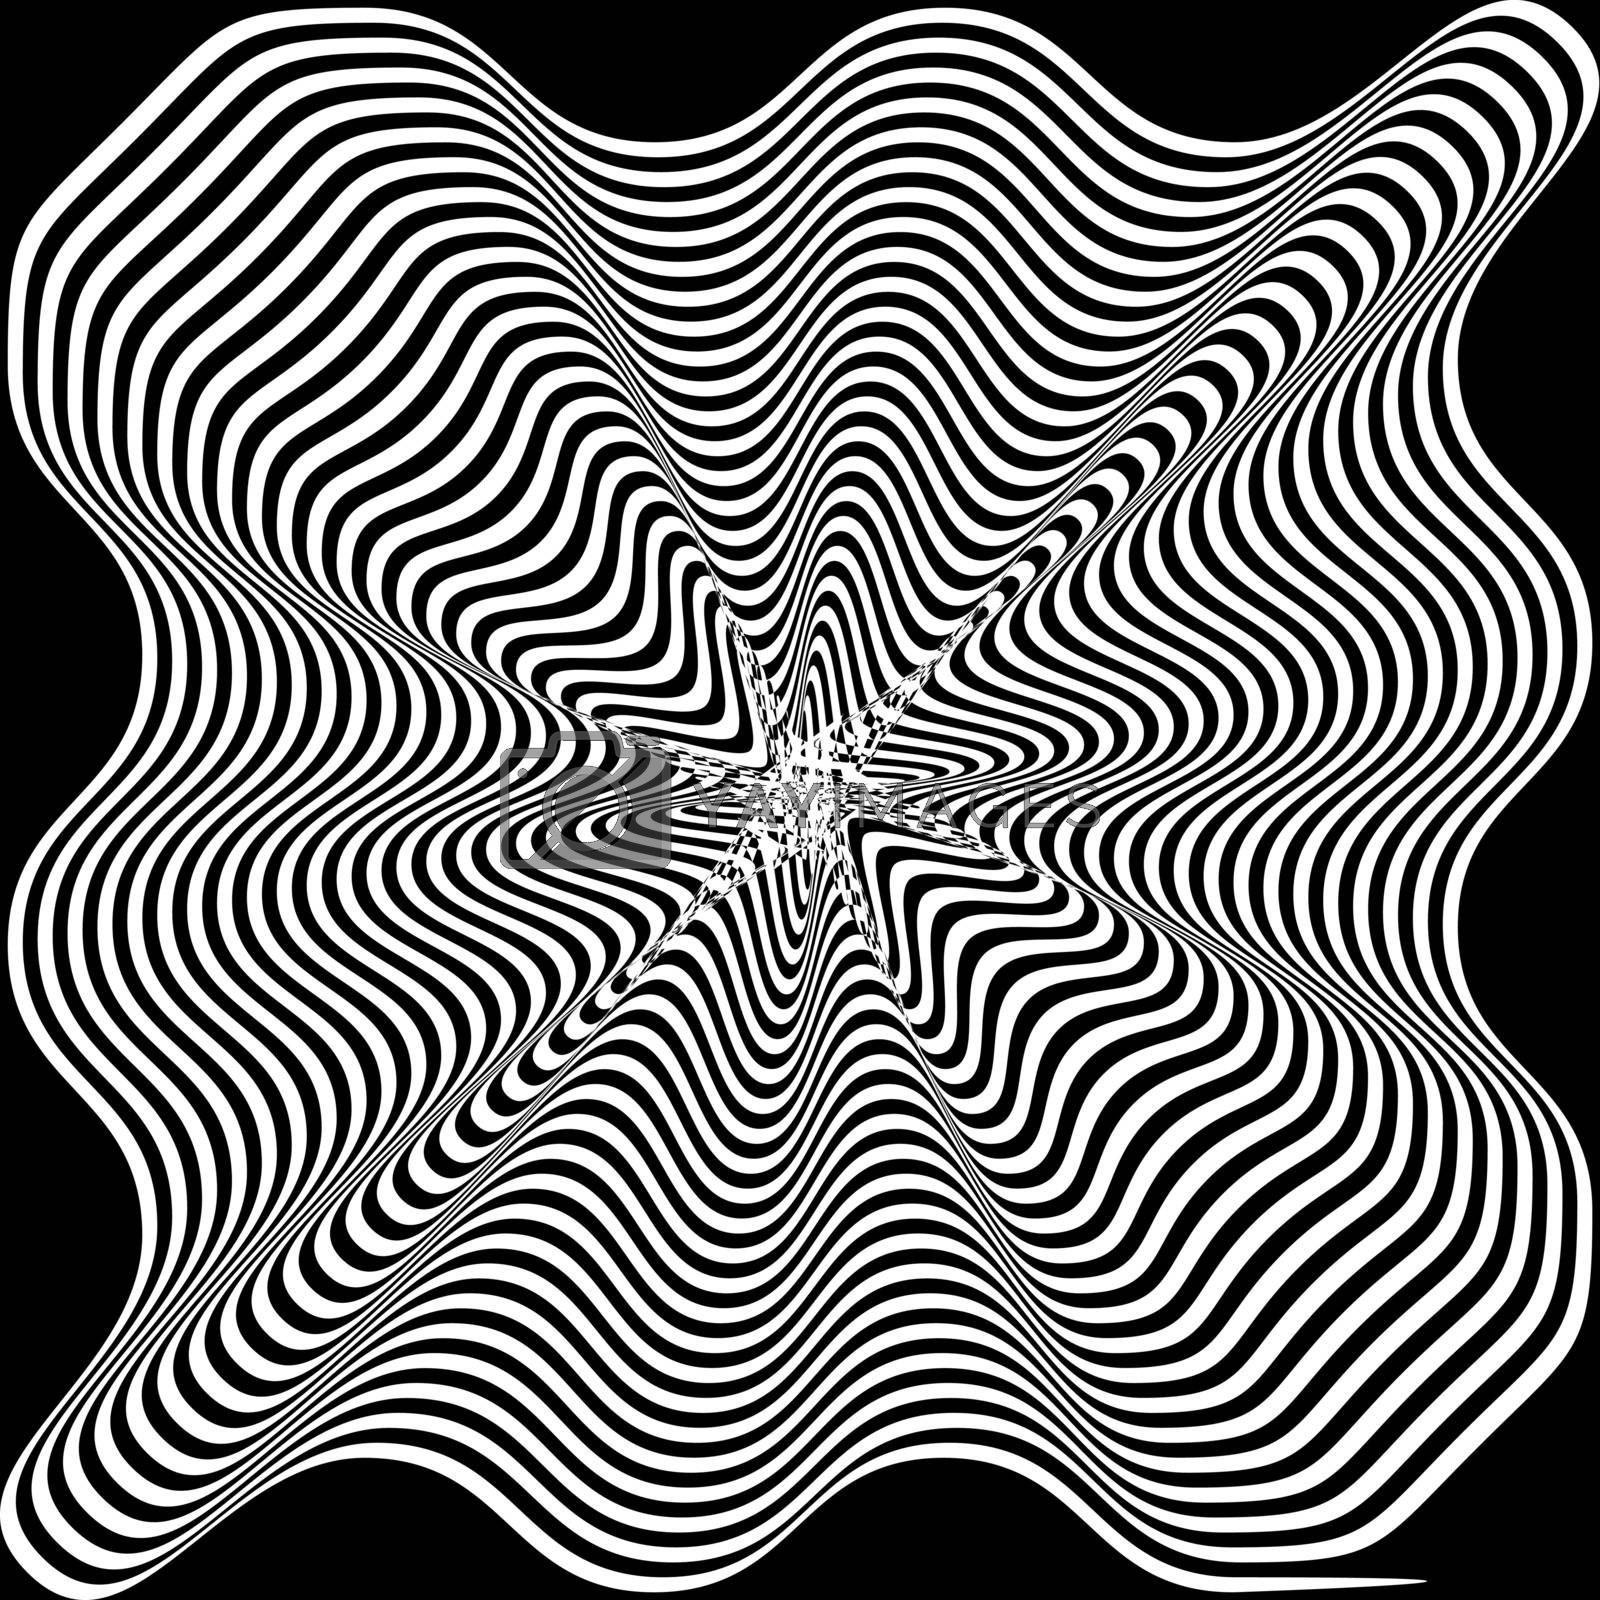 Black and White Hypnotic Background. Vector Illustration. by yganko